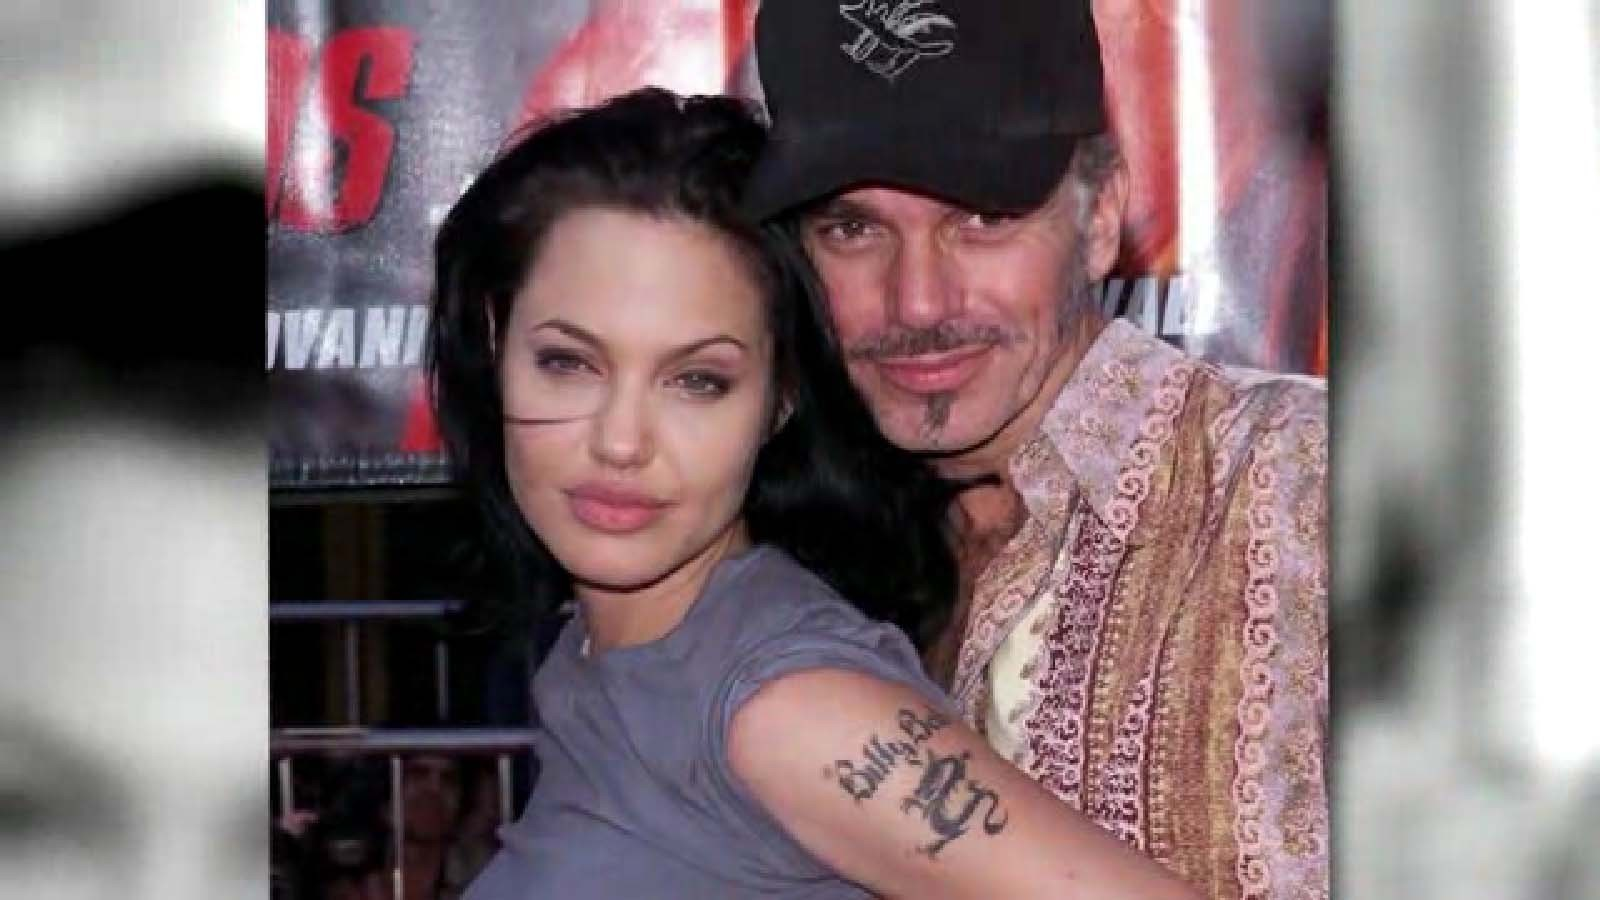 What are some interesting facts about Angelina Jolie? - Quora